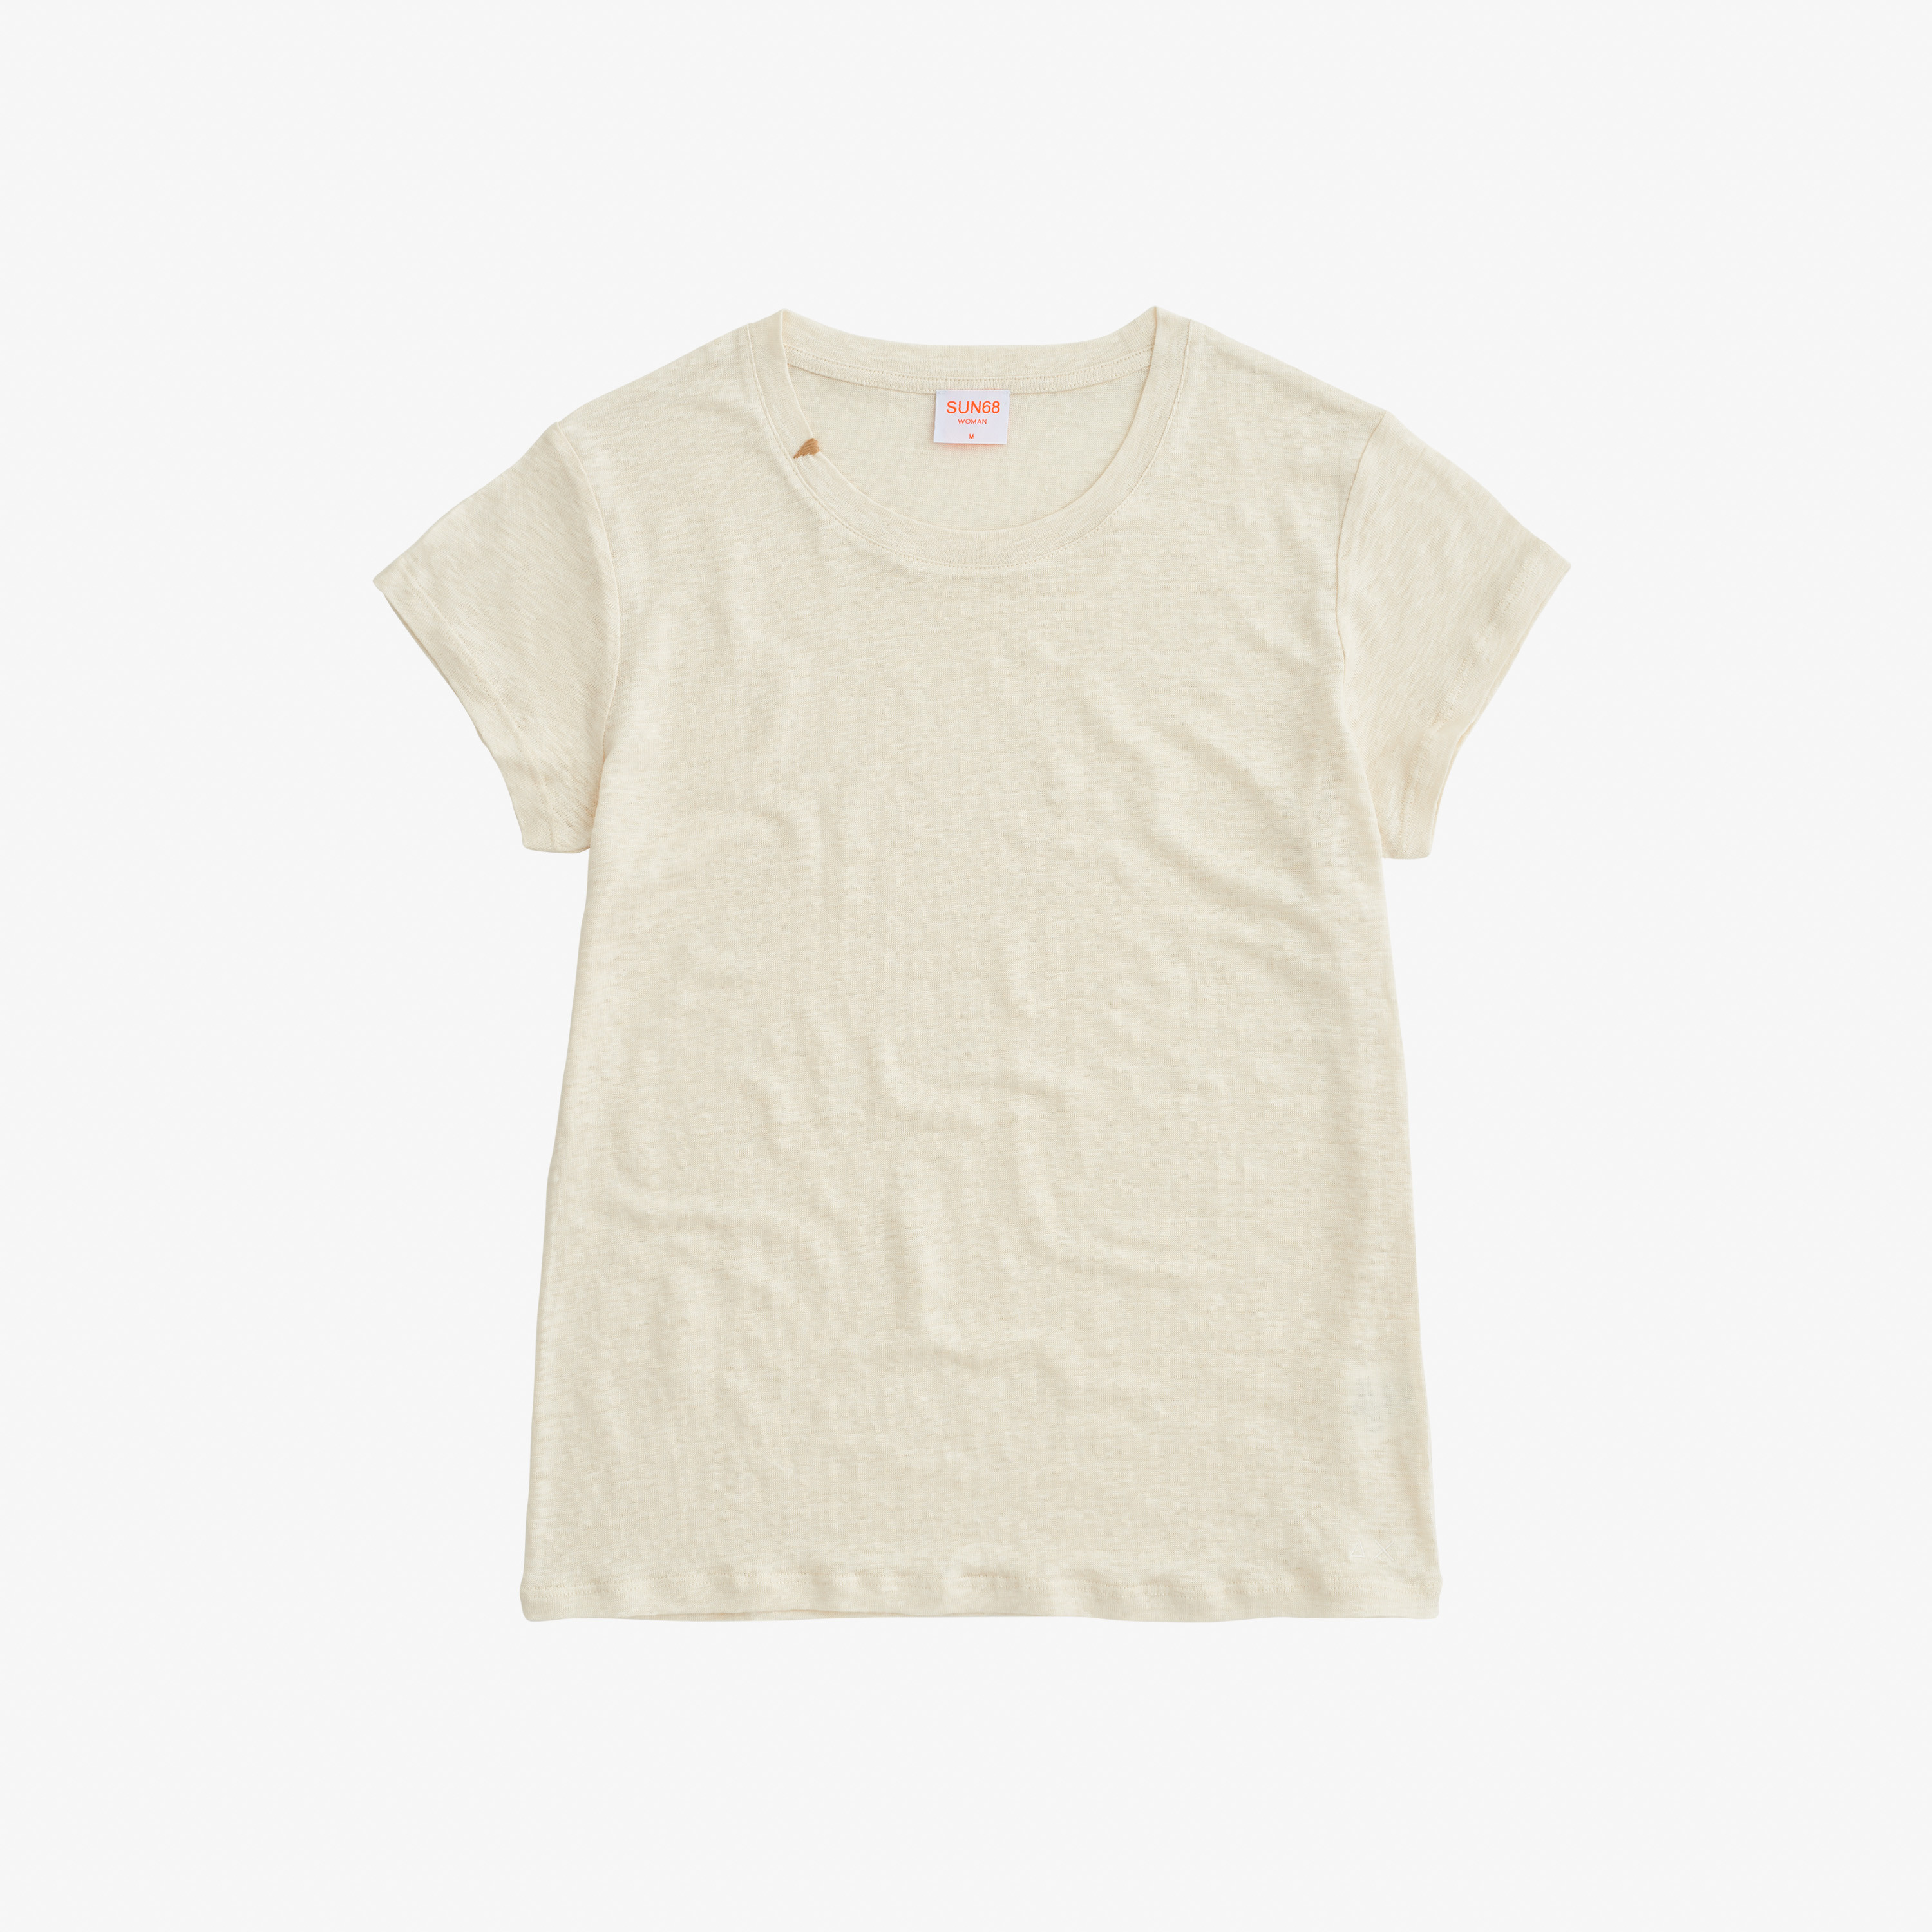 ROUND T-SHIRT LINEN SOLID S/S OFF WHITE